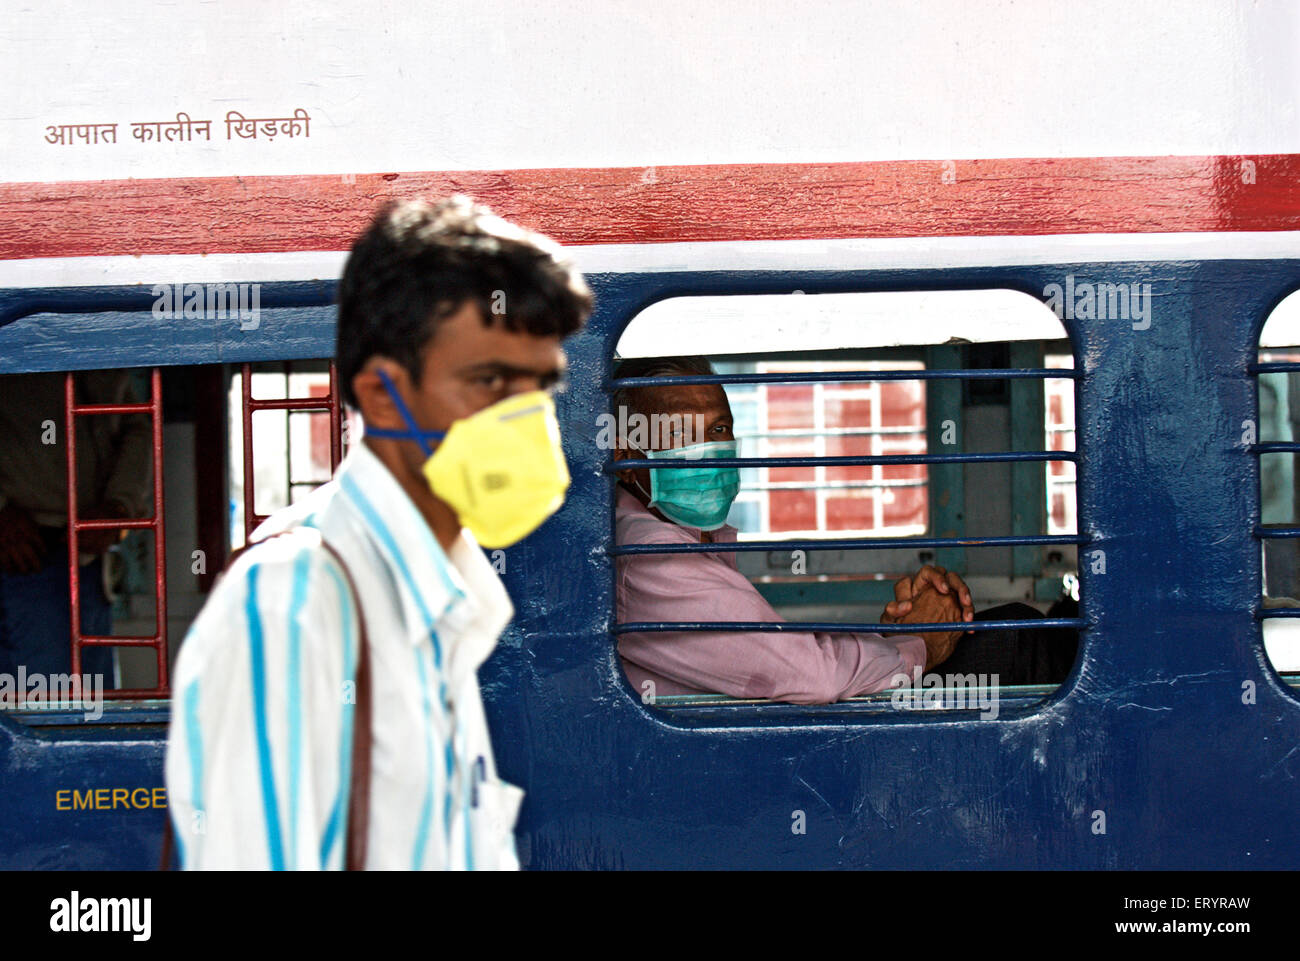 Commuters covered face with mask protection from swine flu ; Bombay Mumbai ; Maharashtra ; India 12 August 2009 - Stock Image